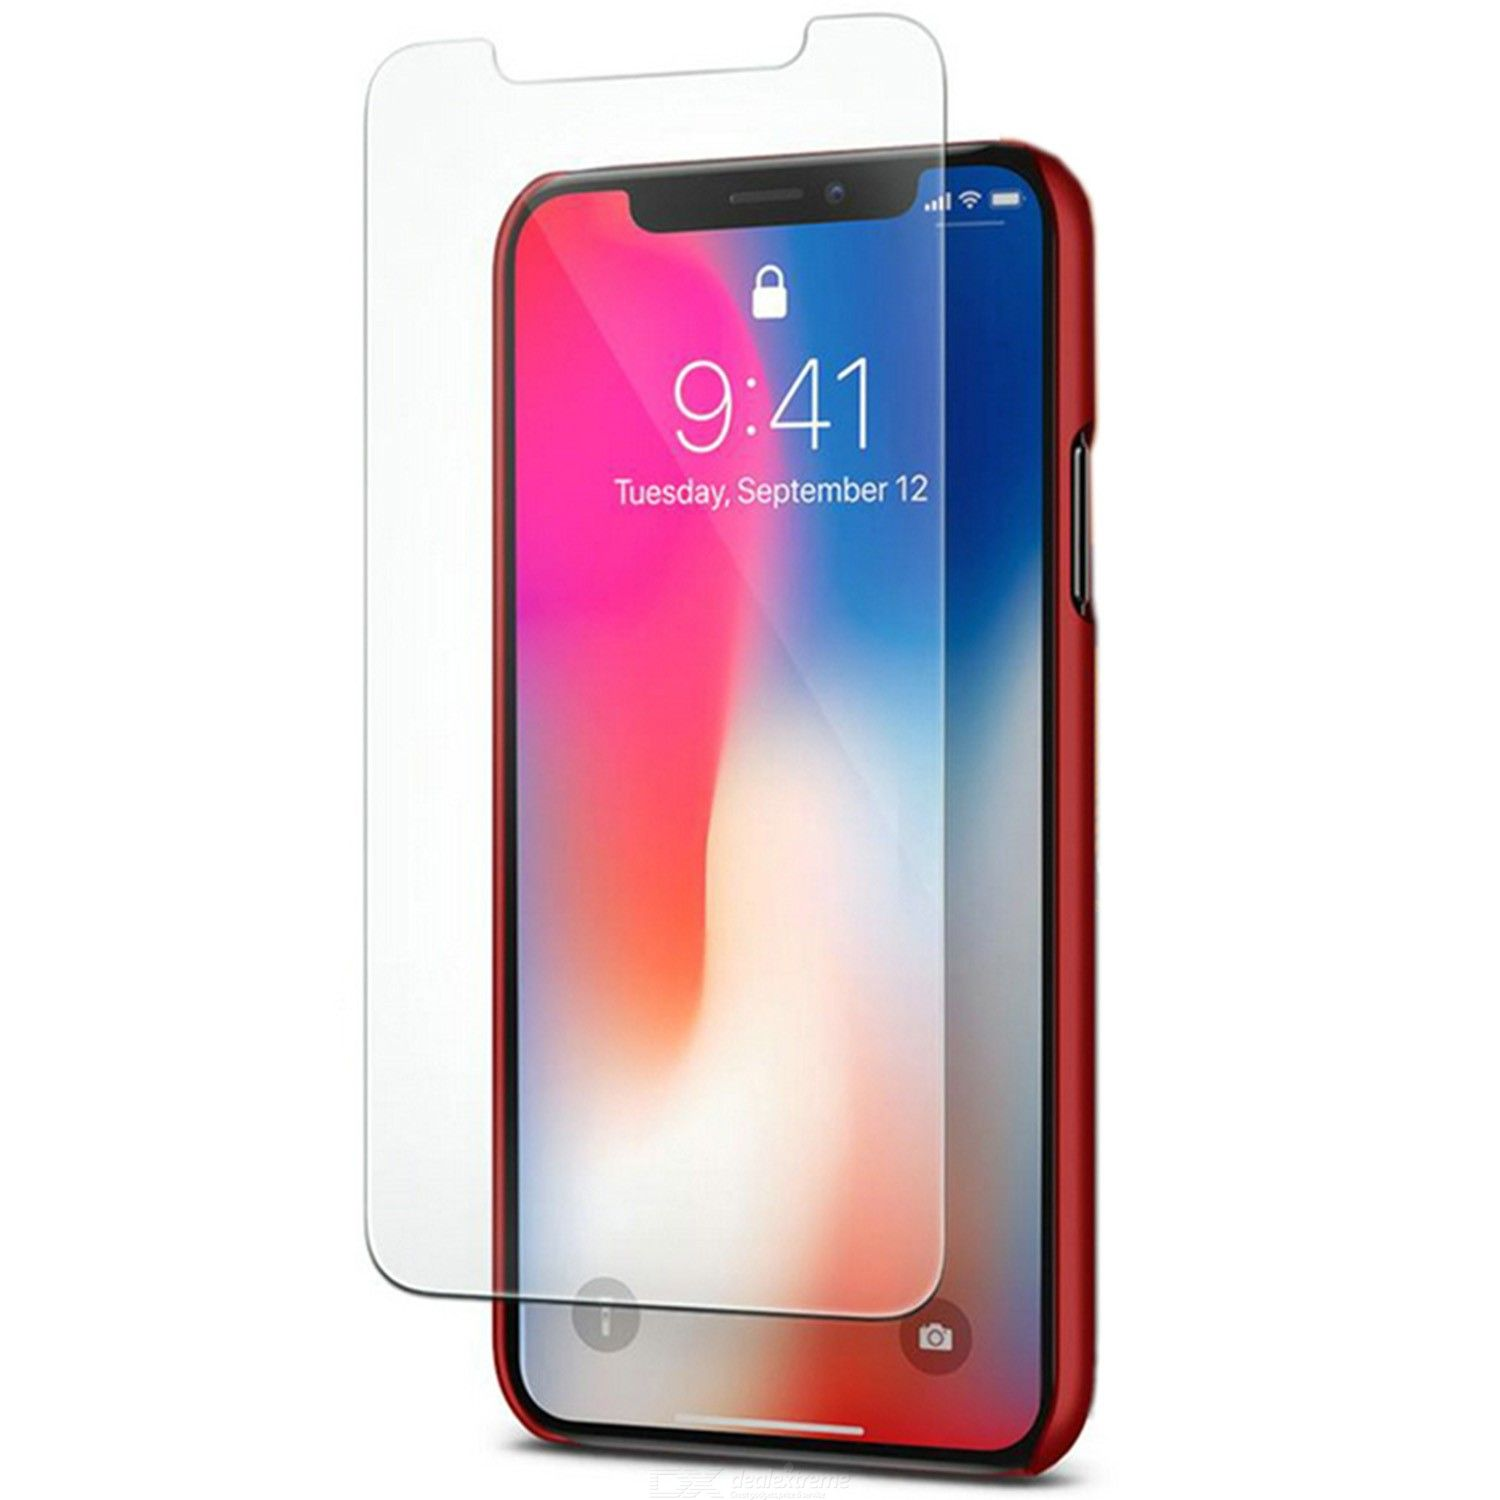 10pcs/set 2.5D Arc Edge 9H Tempered Glass Screen Protector for iPhone XS MAX / iPhone 11 Pro Max 6.5 inch